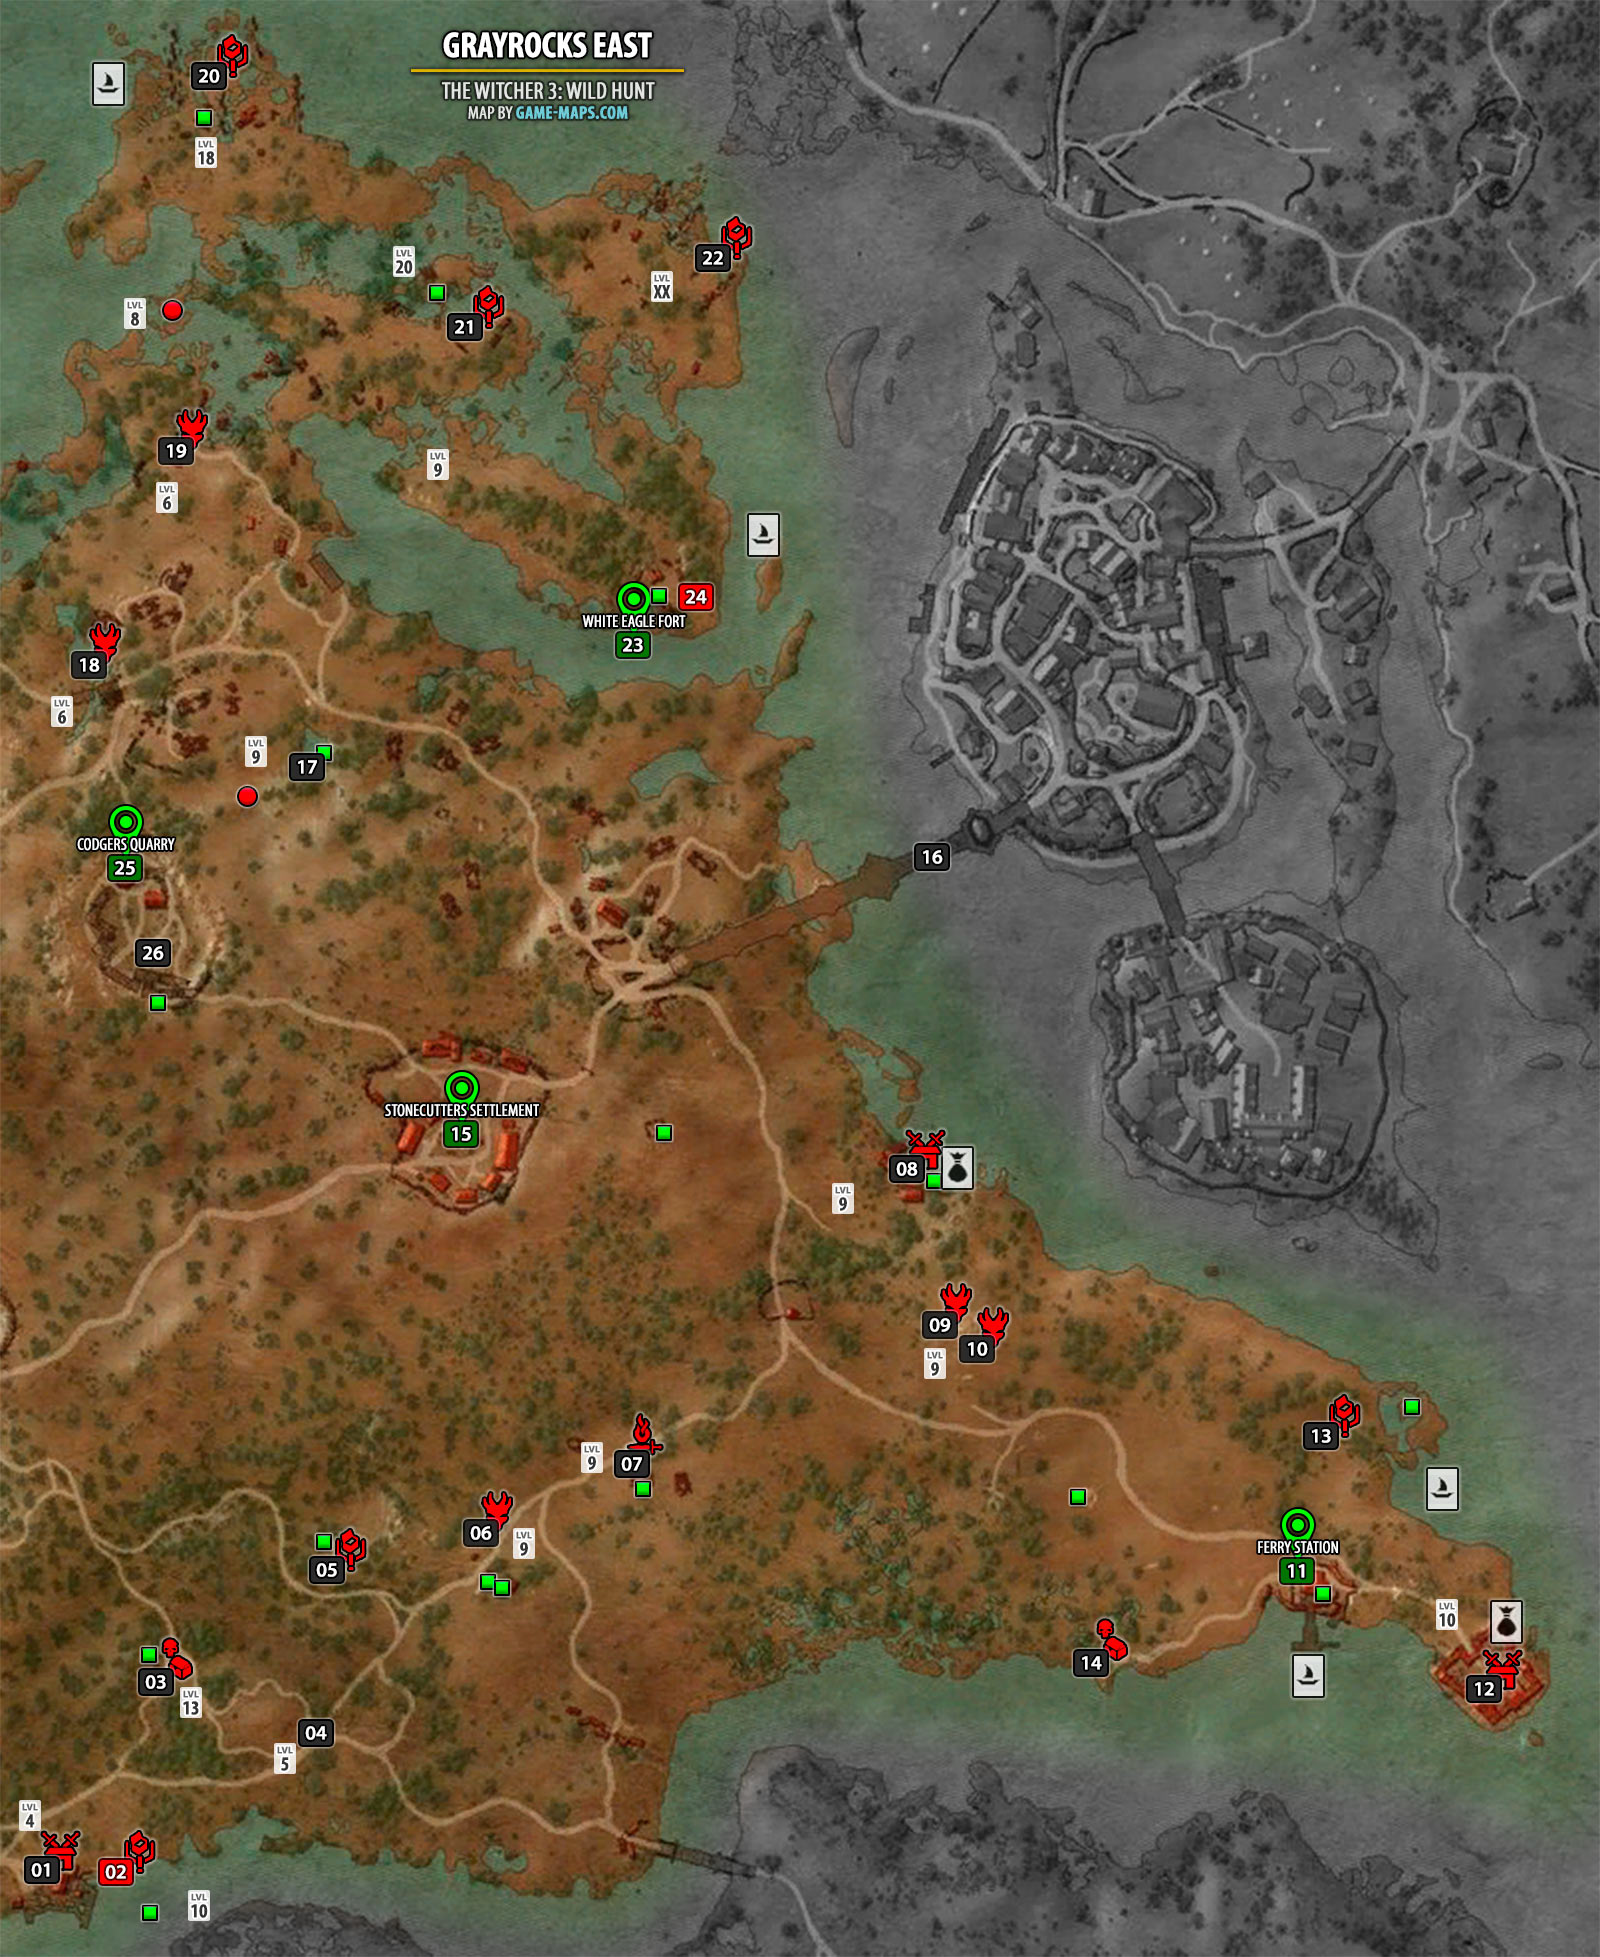 Grayrocks East Map The Witcher 3 Game Maps Com